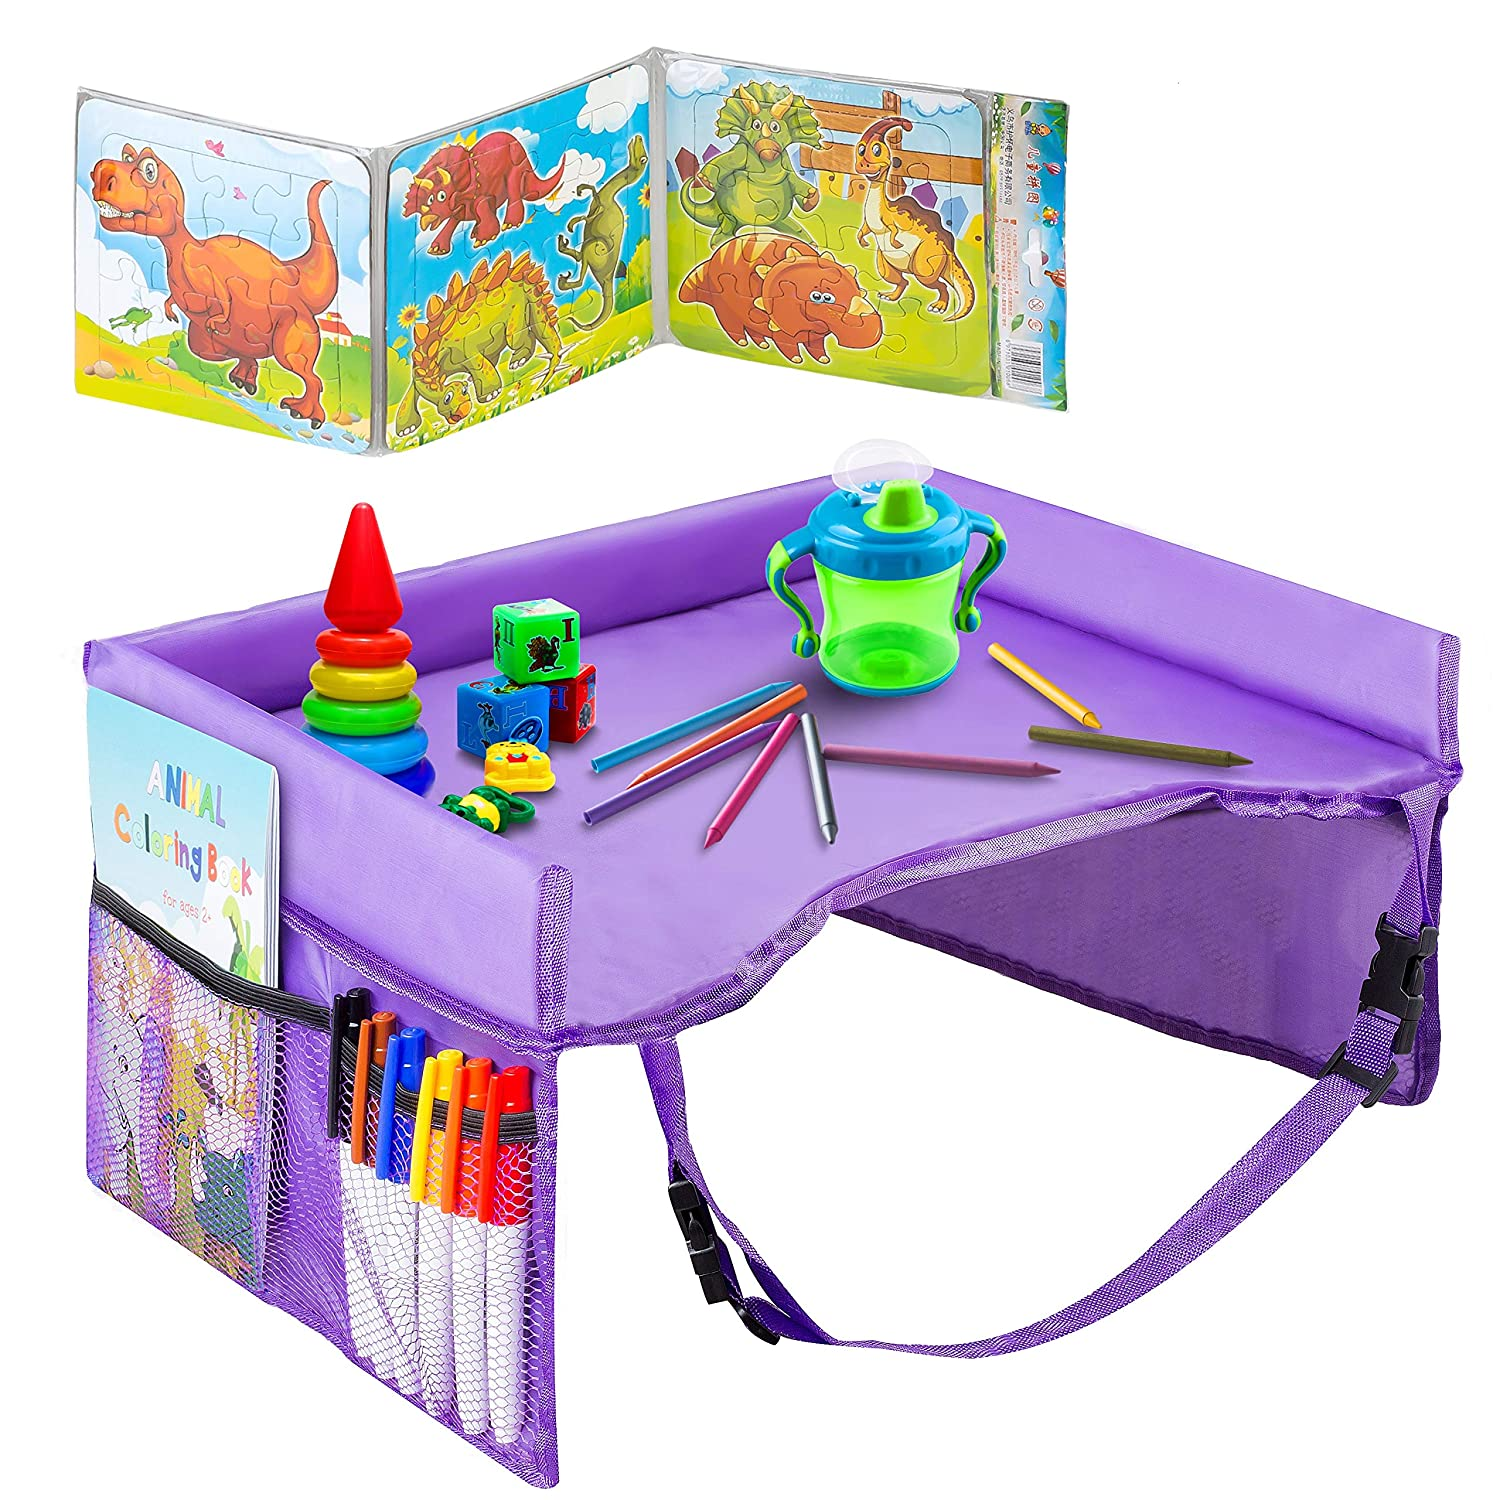 Kids Travel Tray - Waterproof, Portable Toddler Snack and Play Station with Mesh Storage Pockets - Activity Lap Desk for Car Seat, Stroller, Plane by EverythingINplace (Purple)